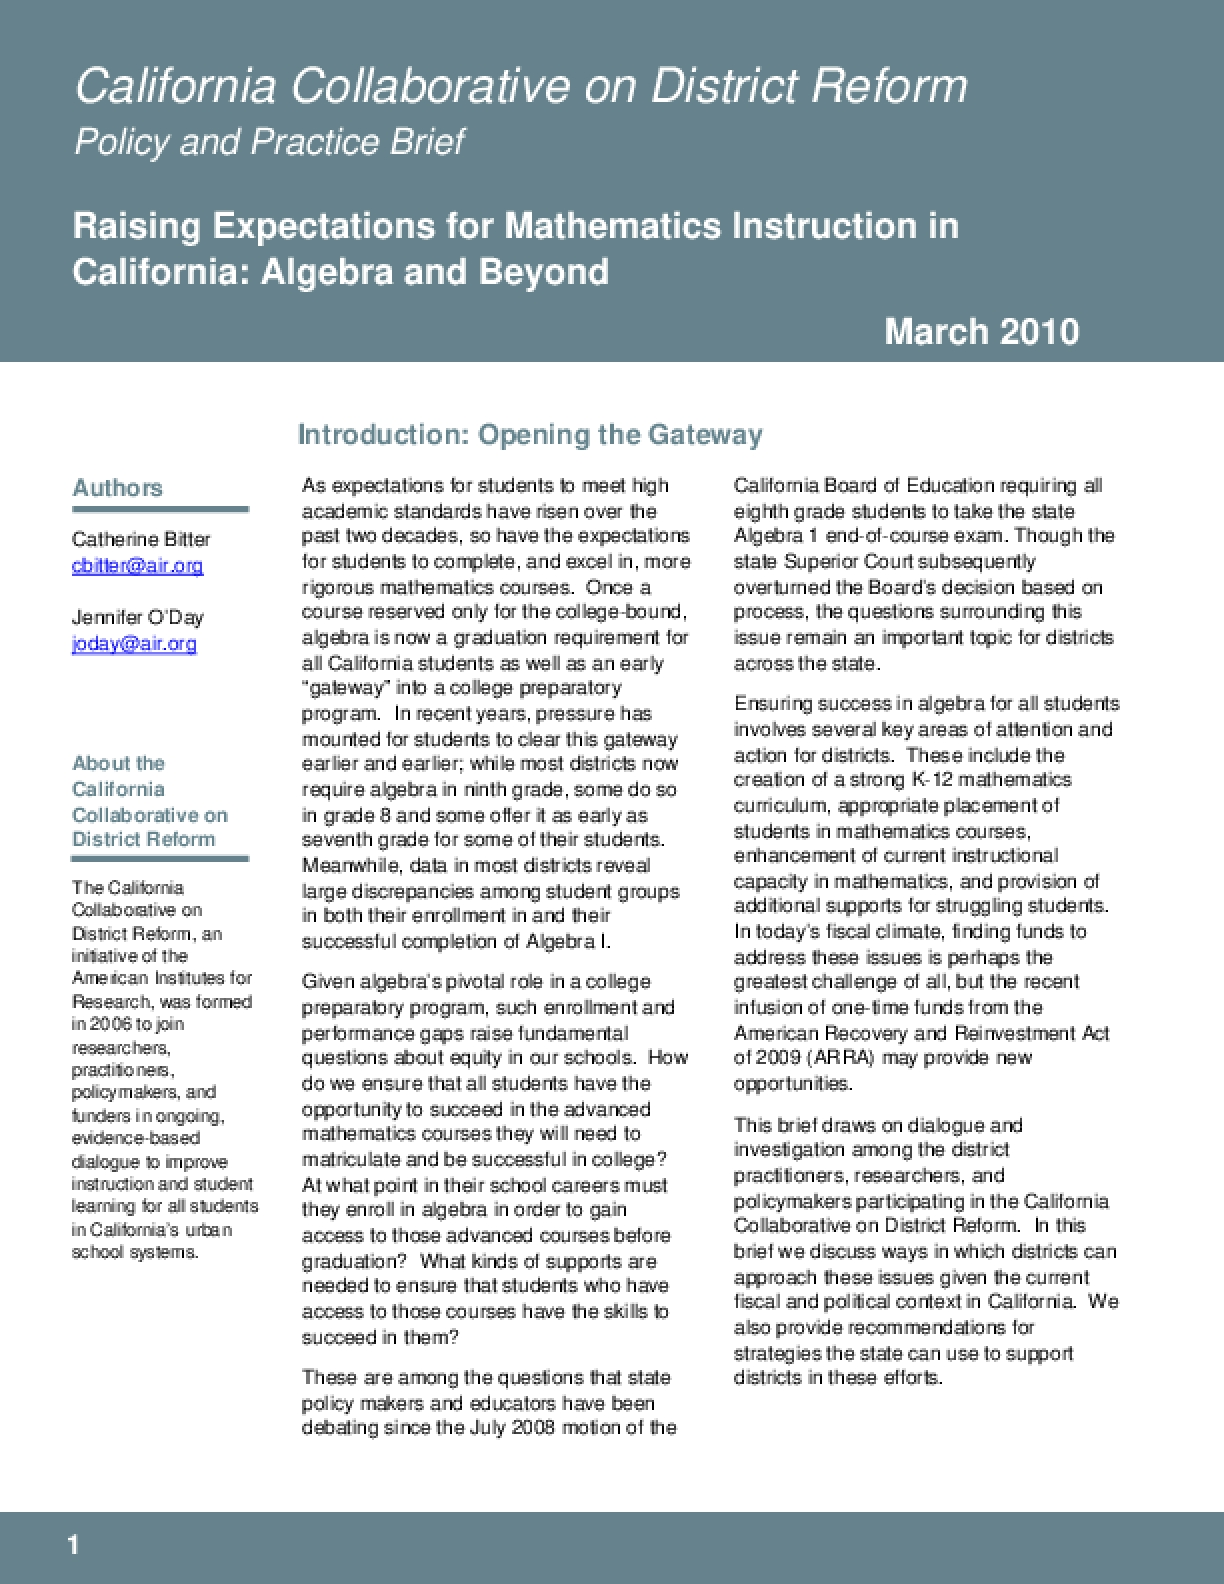 Raising Expectations for Mathematics Instruction in California: Algebra and Beyond